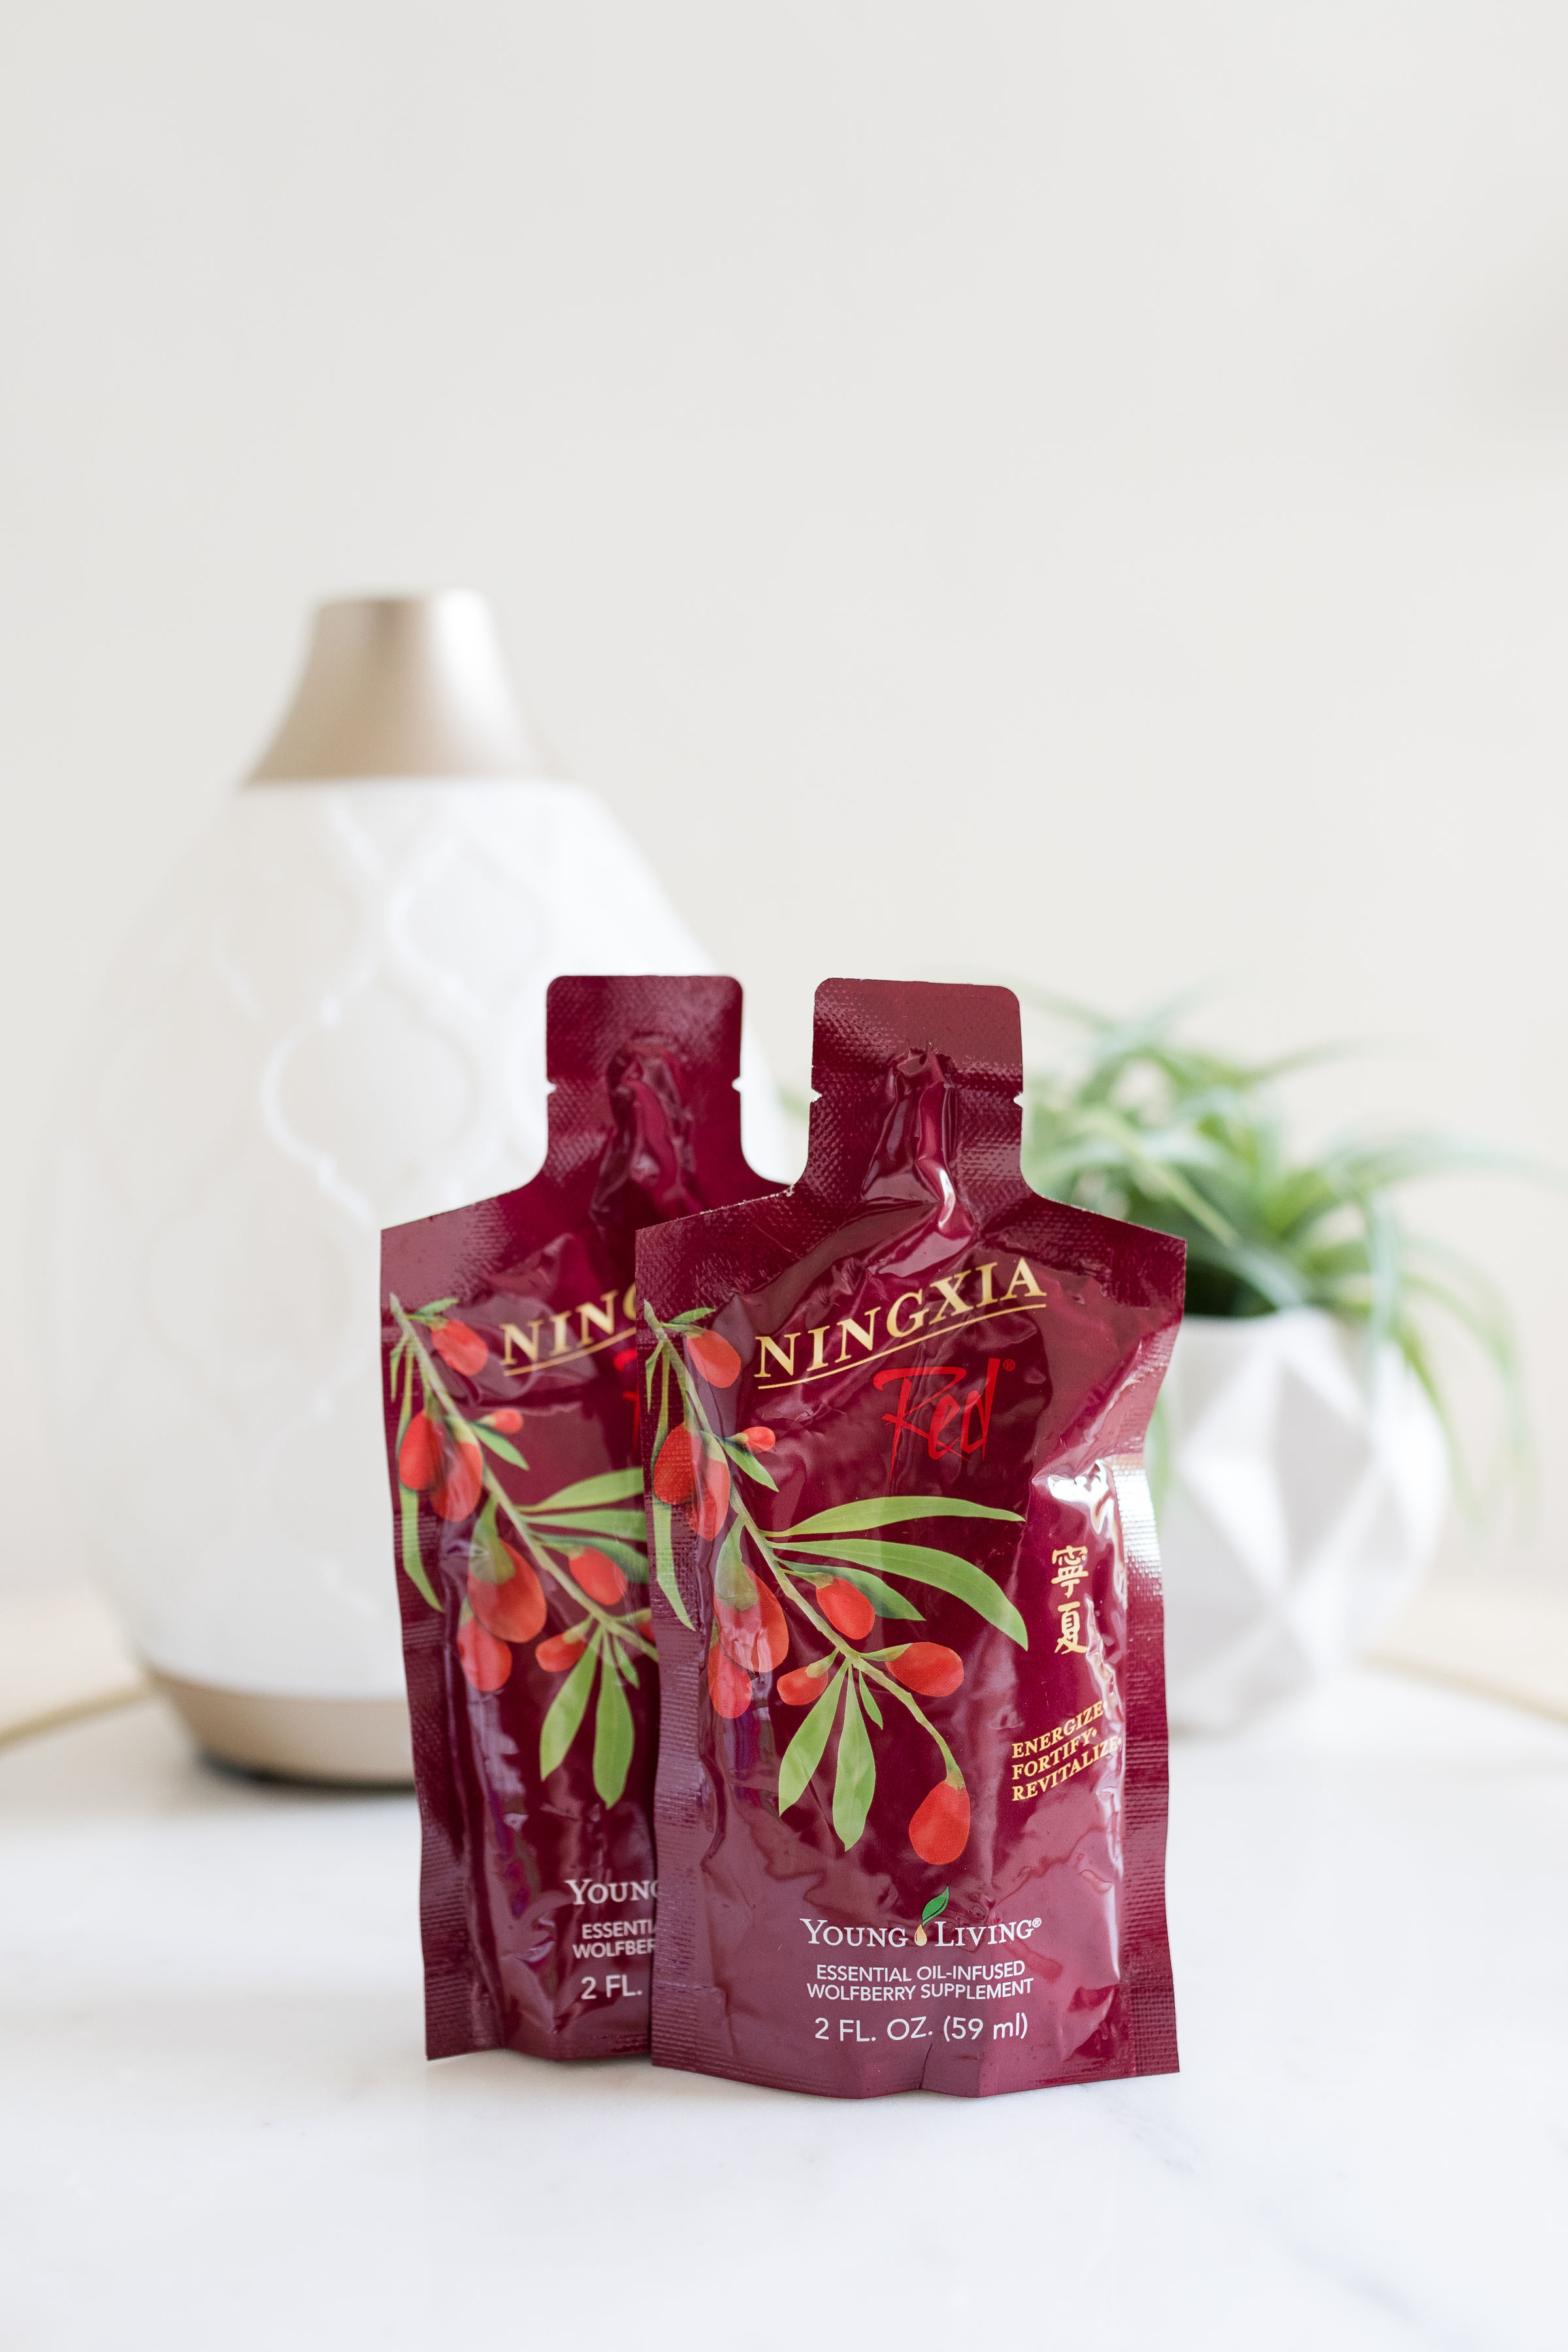 ningxia red - + our antioxidant powerhouse drink+ pureed wolfberries+ great for the whole family+ drink daily for immune boosting benefits+ dilute with water or sparkling beverage if you choose…or drink the straight juice.